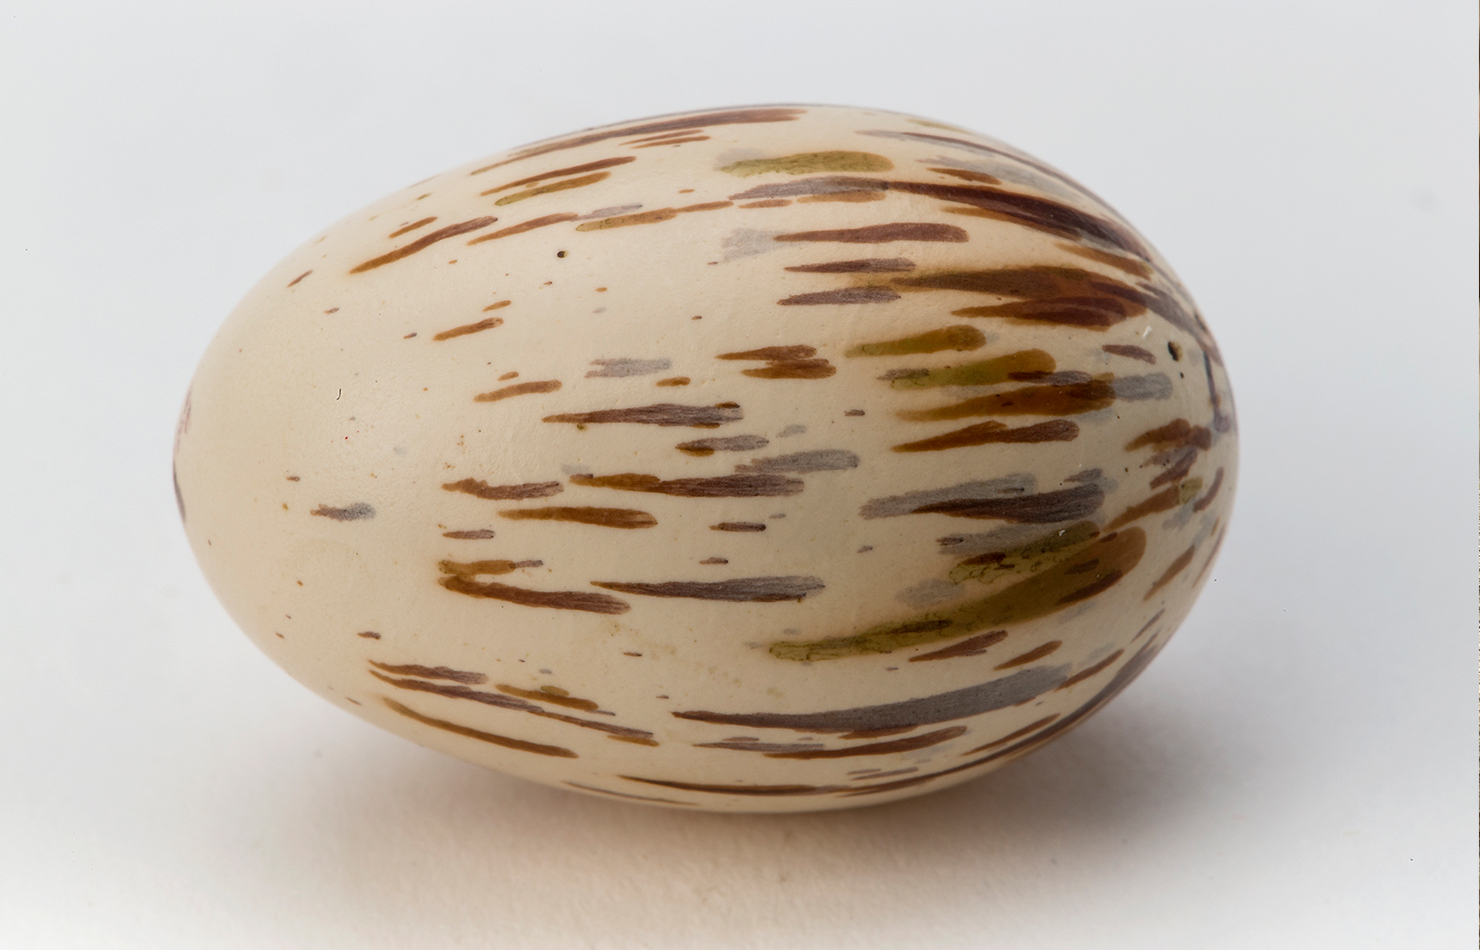 Cock-of-the-rock egg.